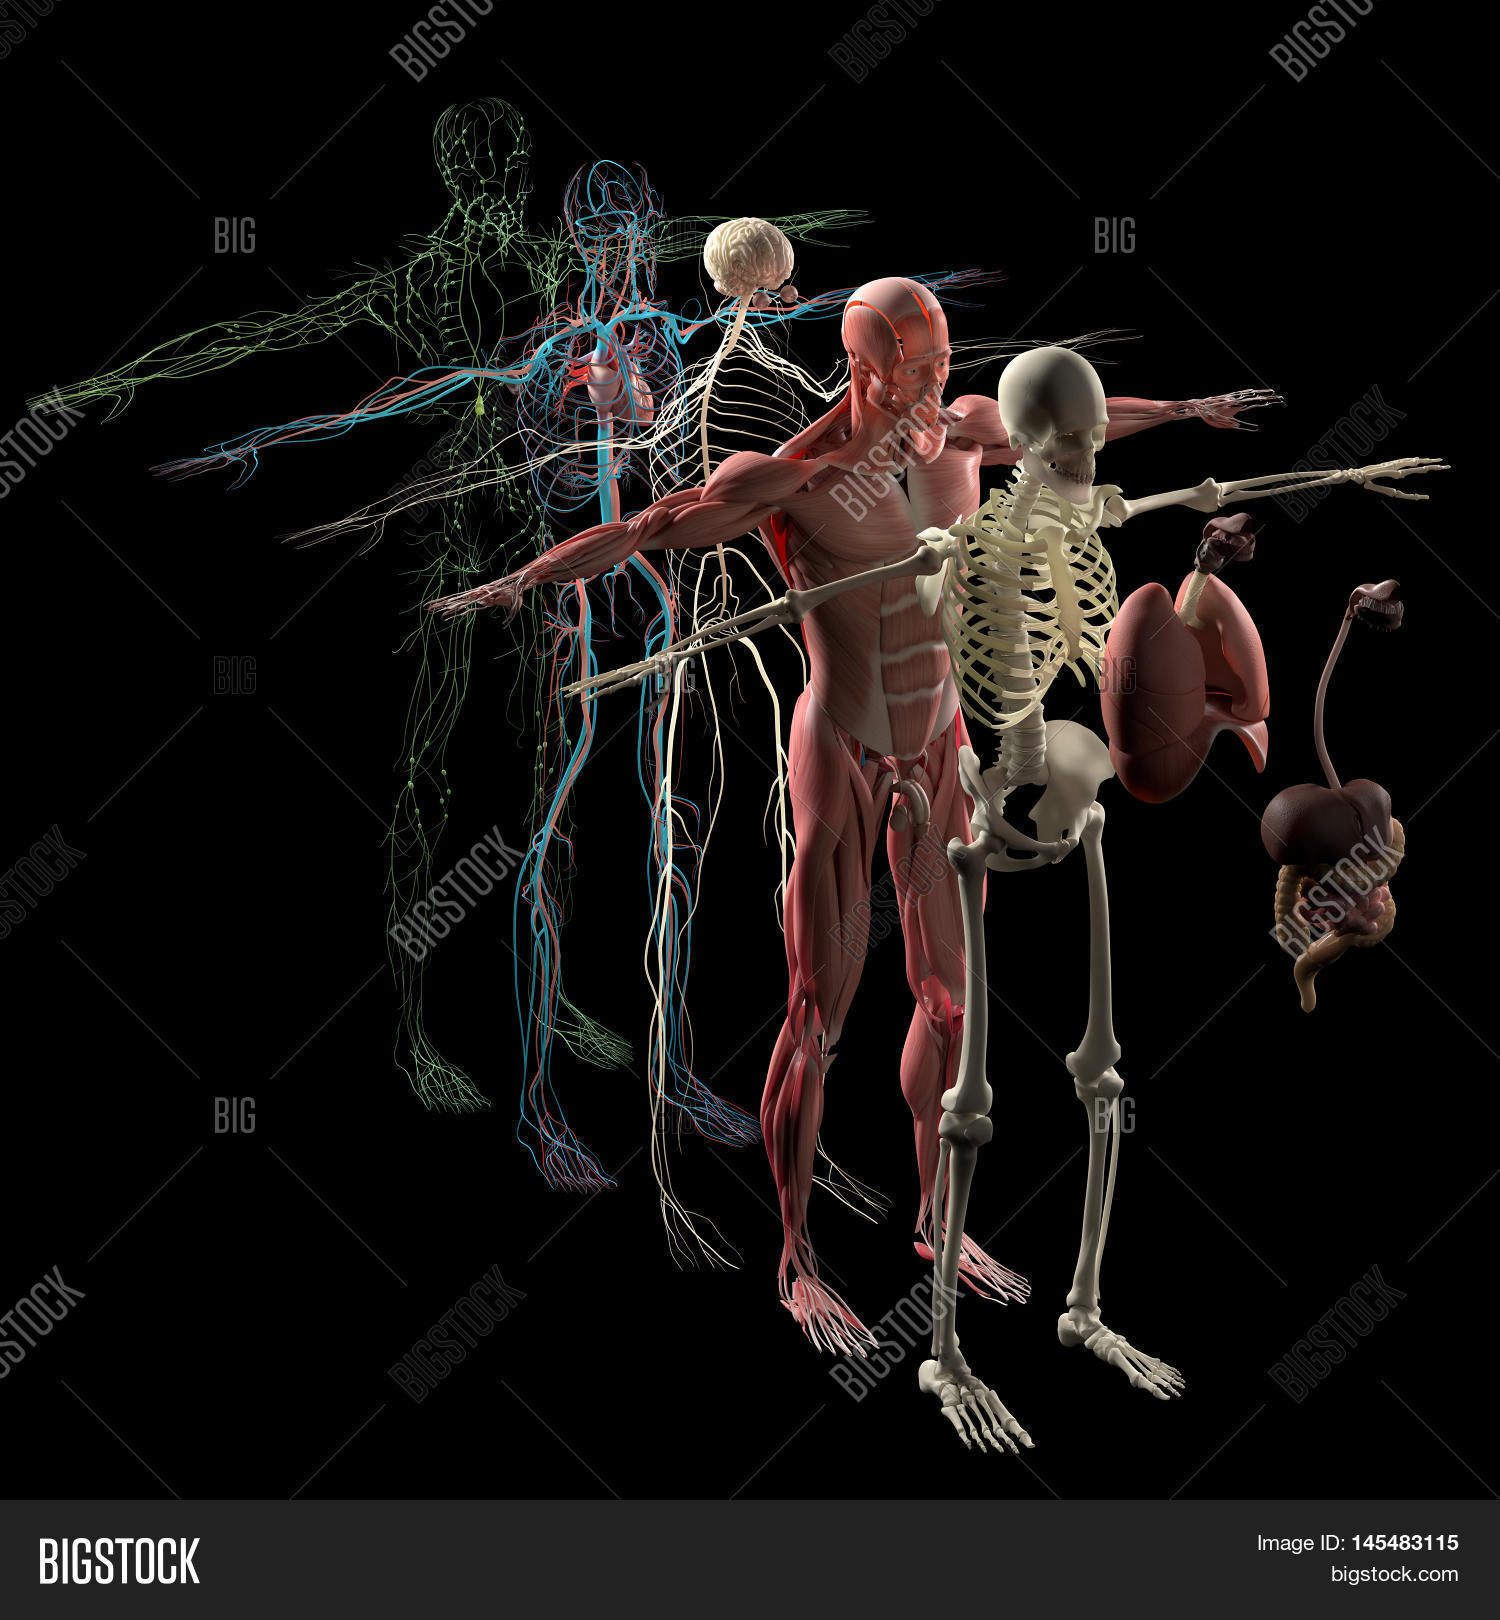 Human Anatomy Exploded Image & Photo (Free Trial) | Bigstock